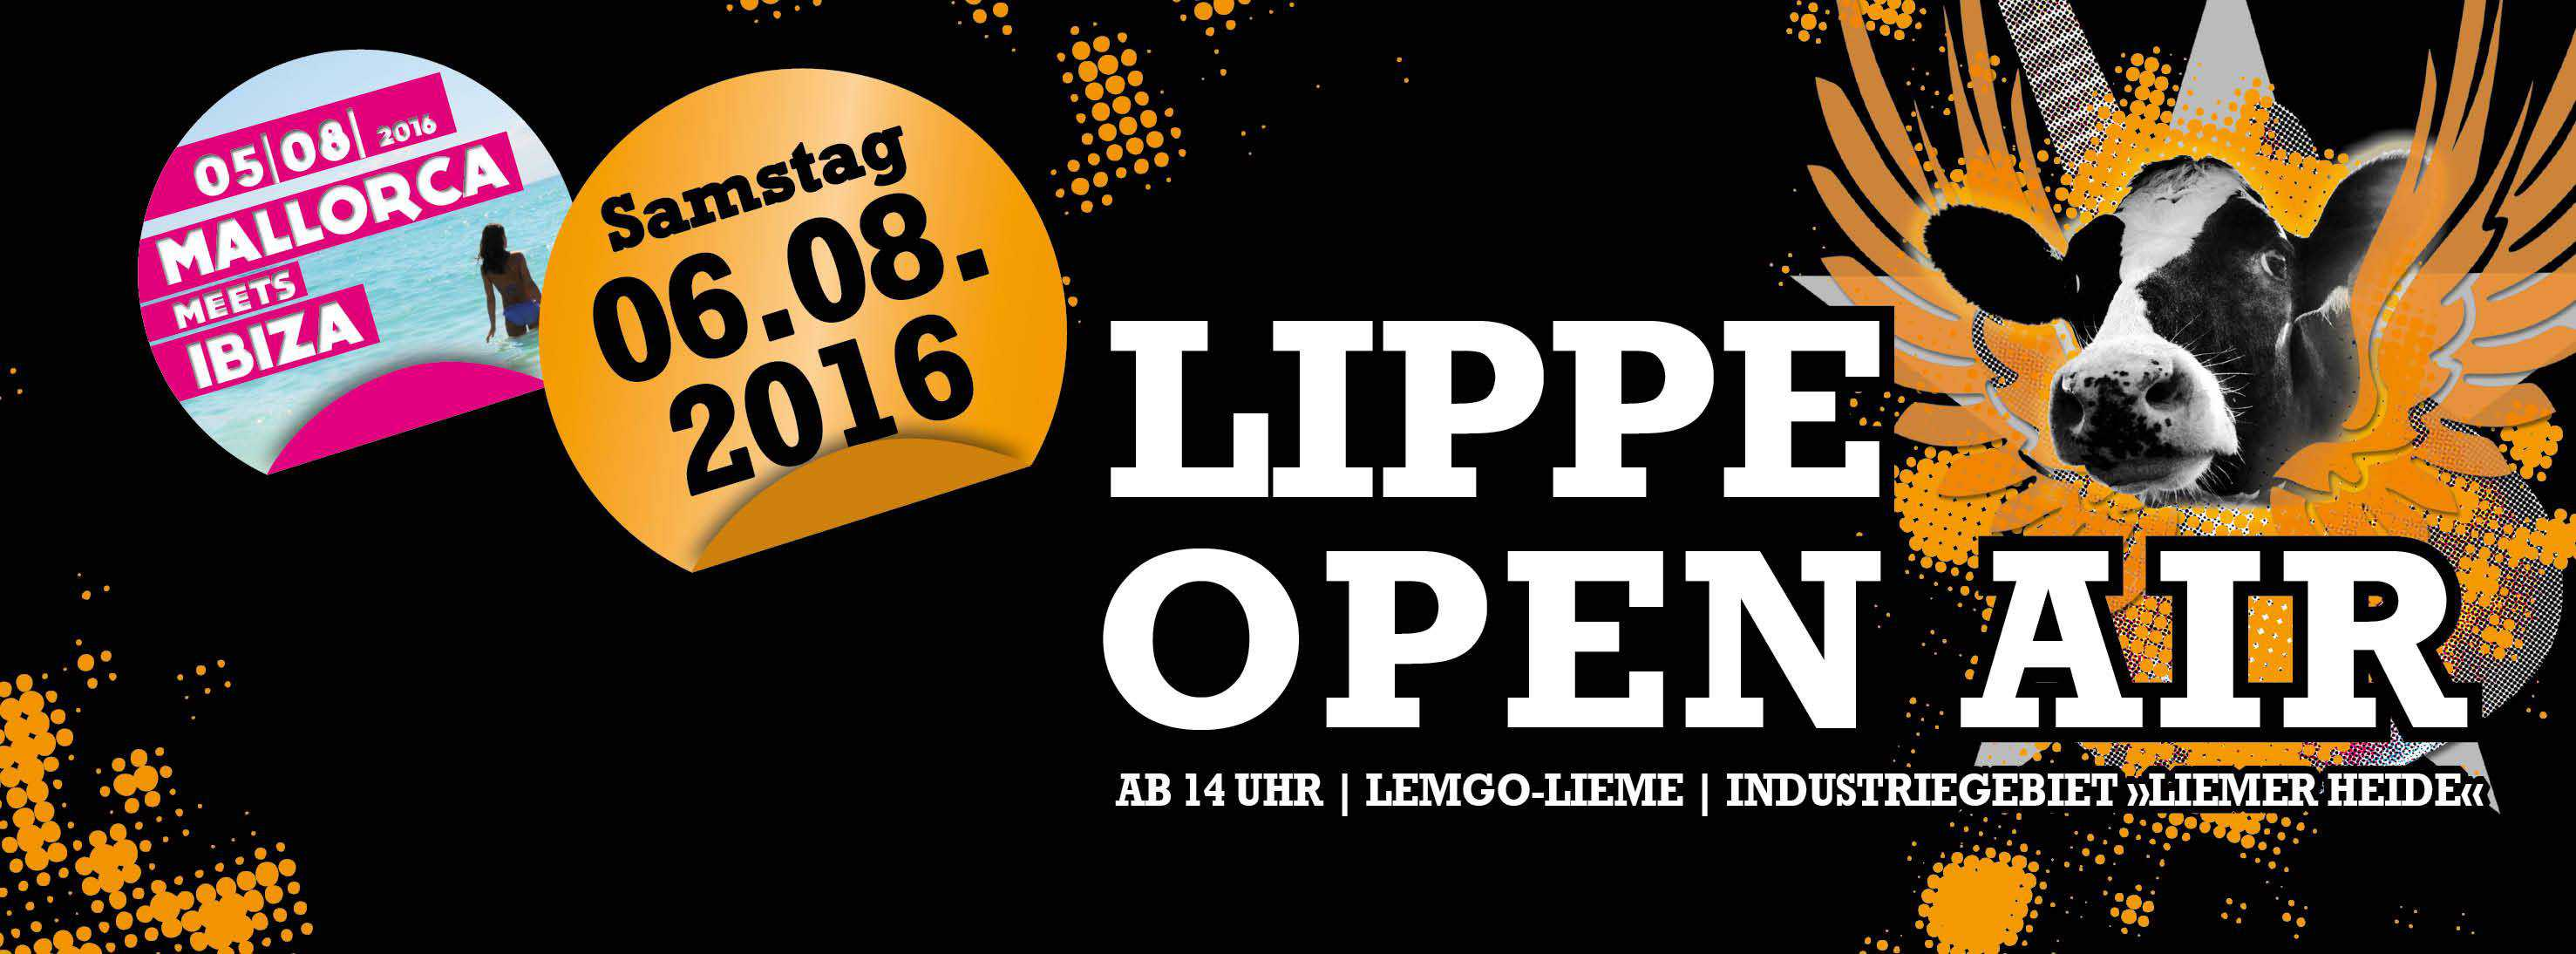 lippe open air